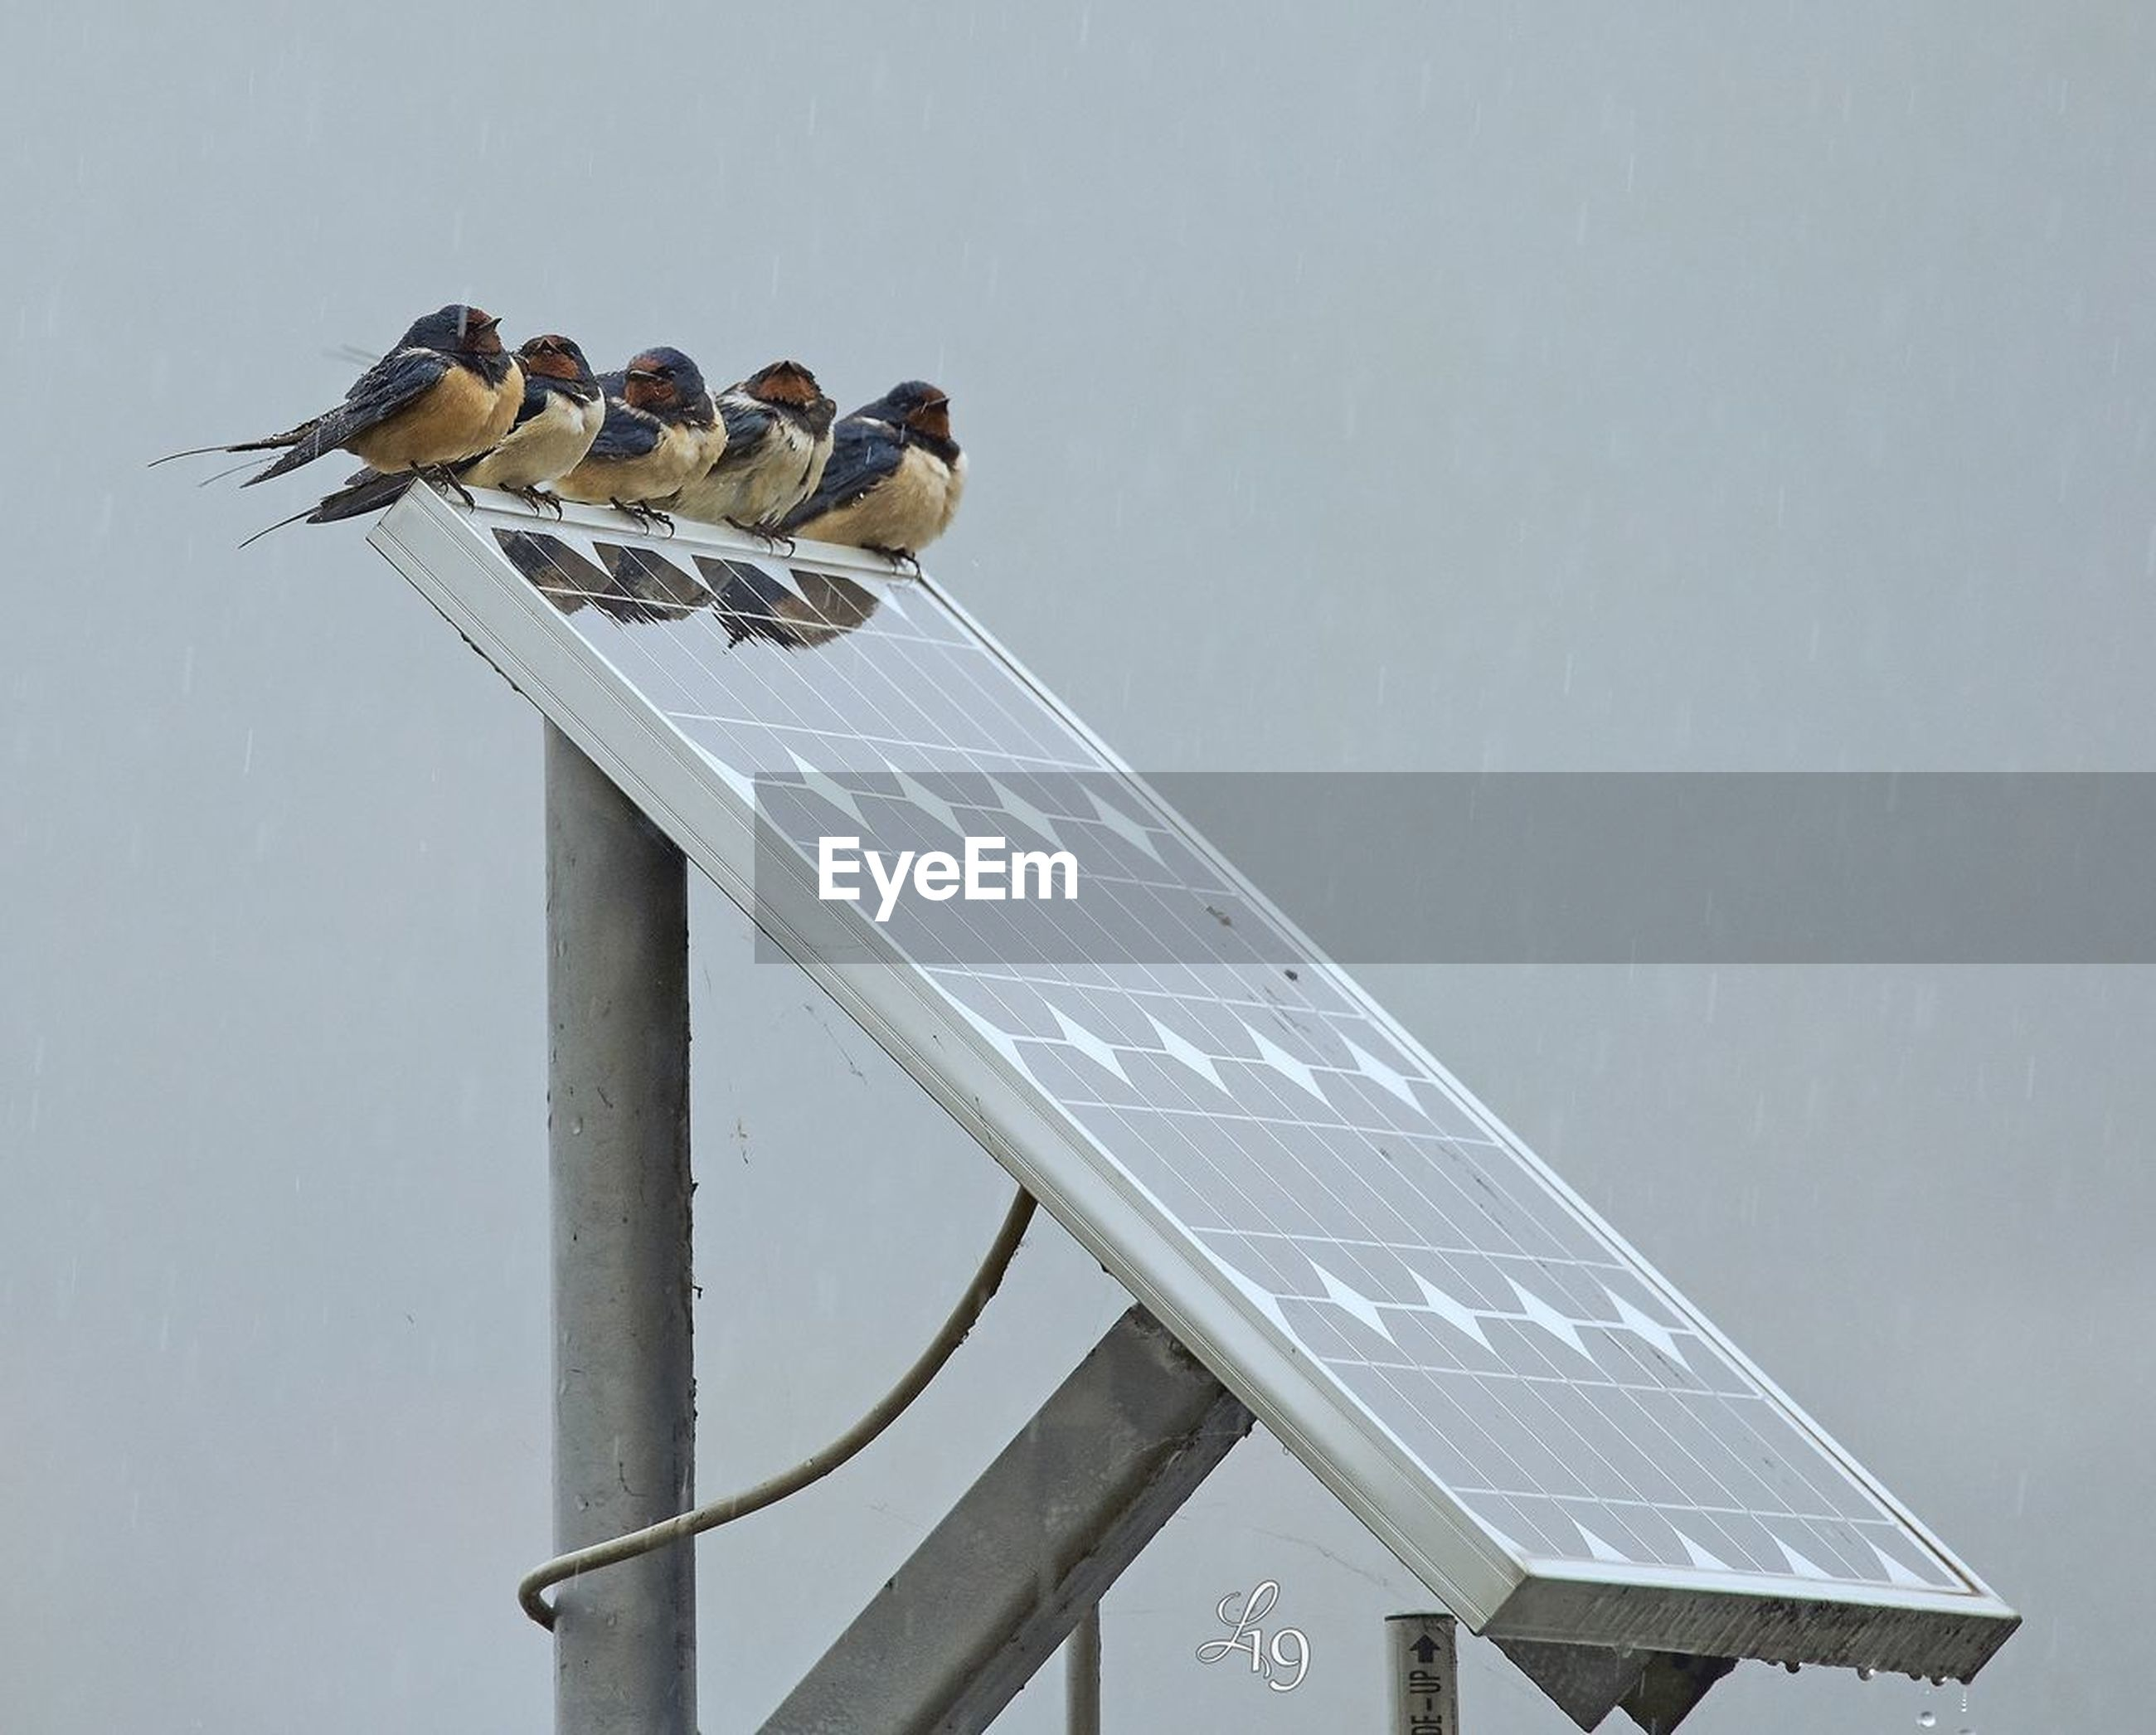 bird, animal wildlife, animal themes, vertebrate, animals in the wild, animal, group of animals, perching, no people, day, nature, sky, low angle view, outdoors, technology, renewable energy, architecture, solar energy, solar panel, fuel and power generation, power supply, animal family